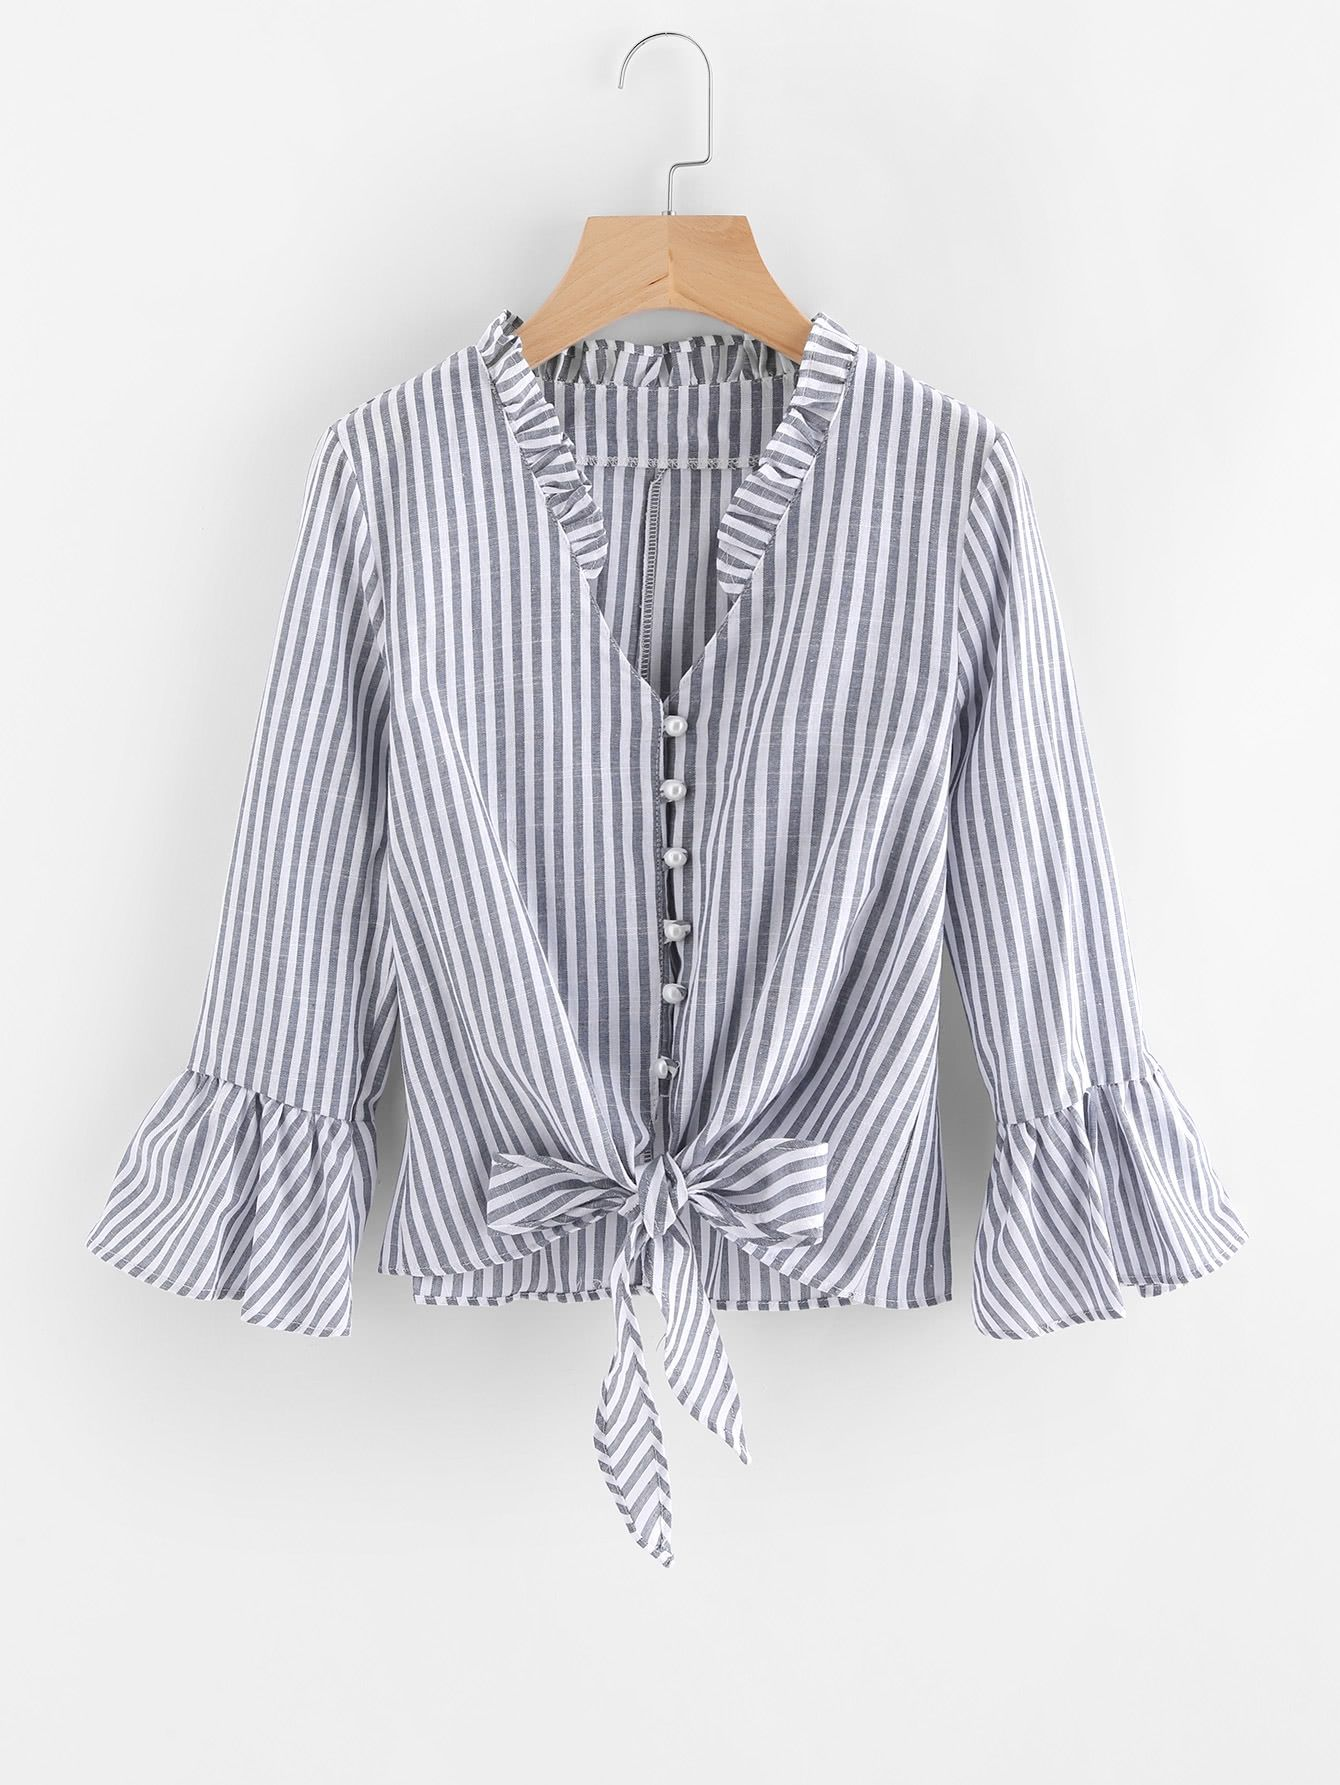 57 Womens Fall Shirts [all under $20]